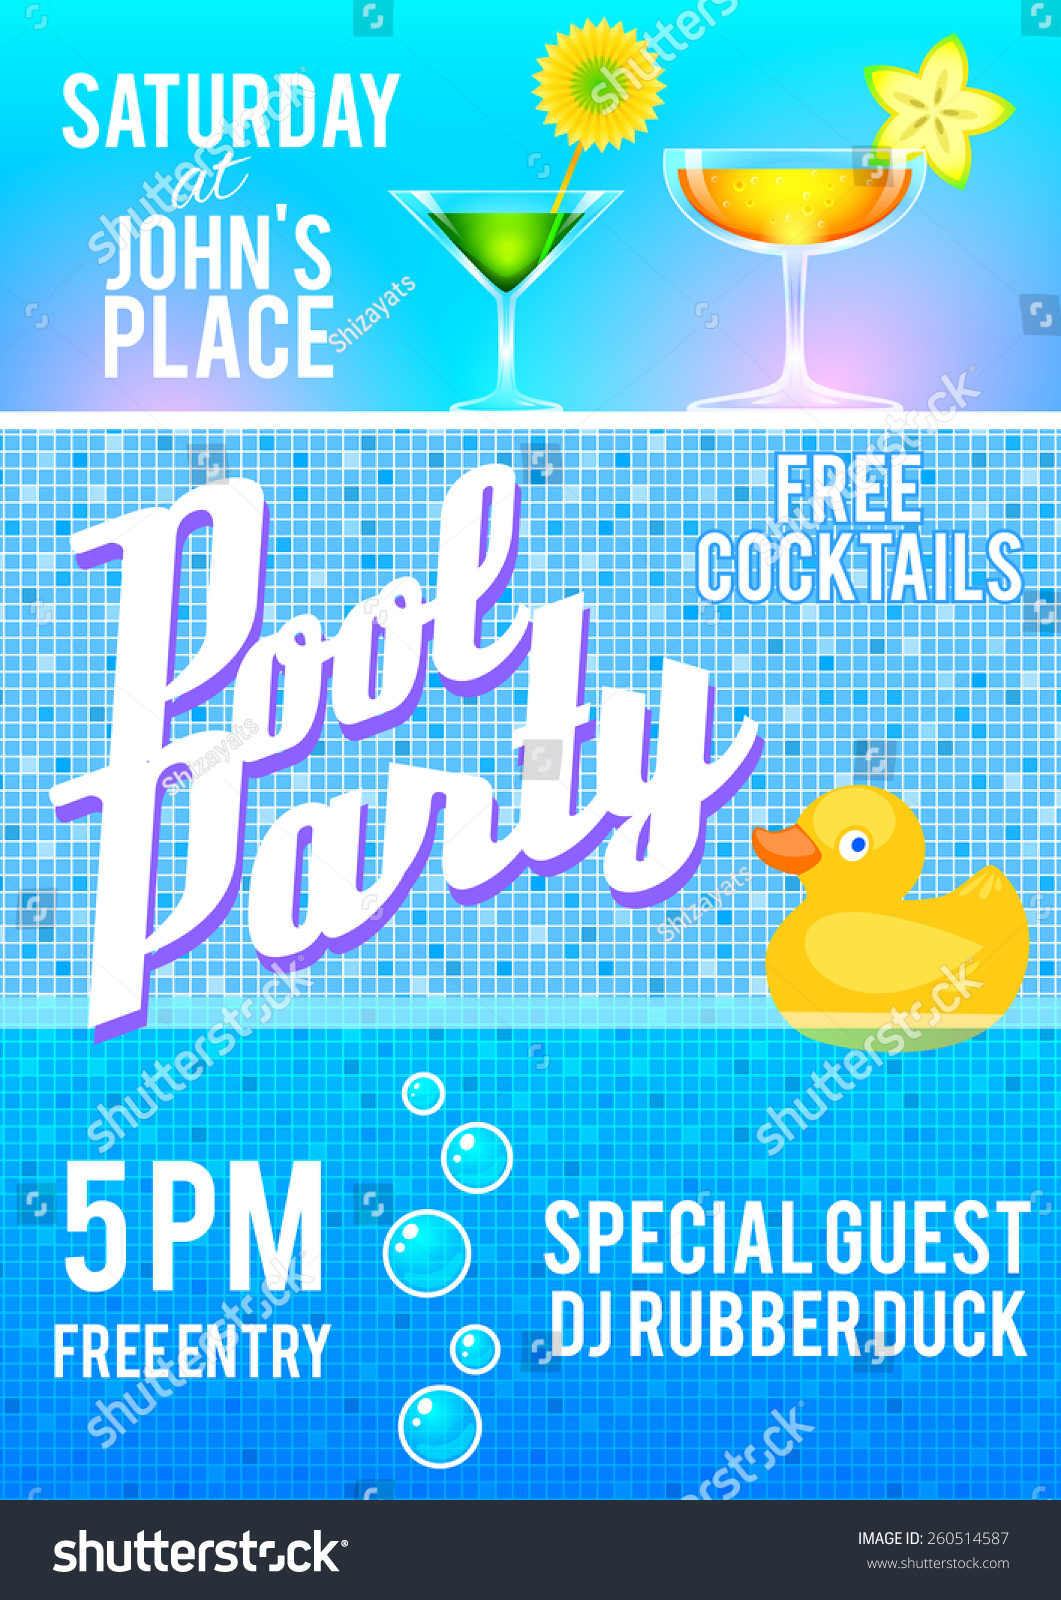 Pool Party Flyer Template Featuring Cocktails, Pool Tile, Bubbles And A  Rubber Duck.